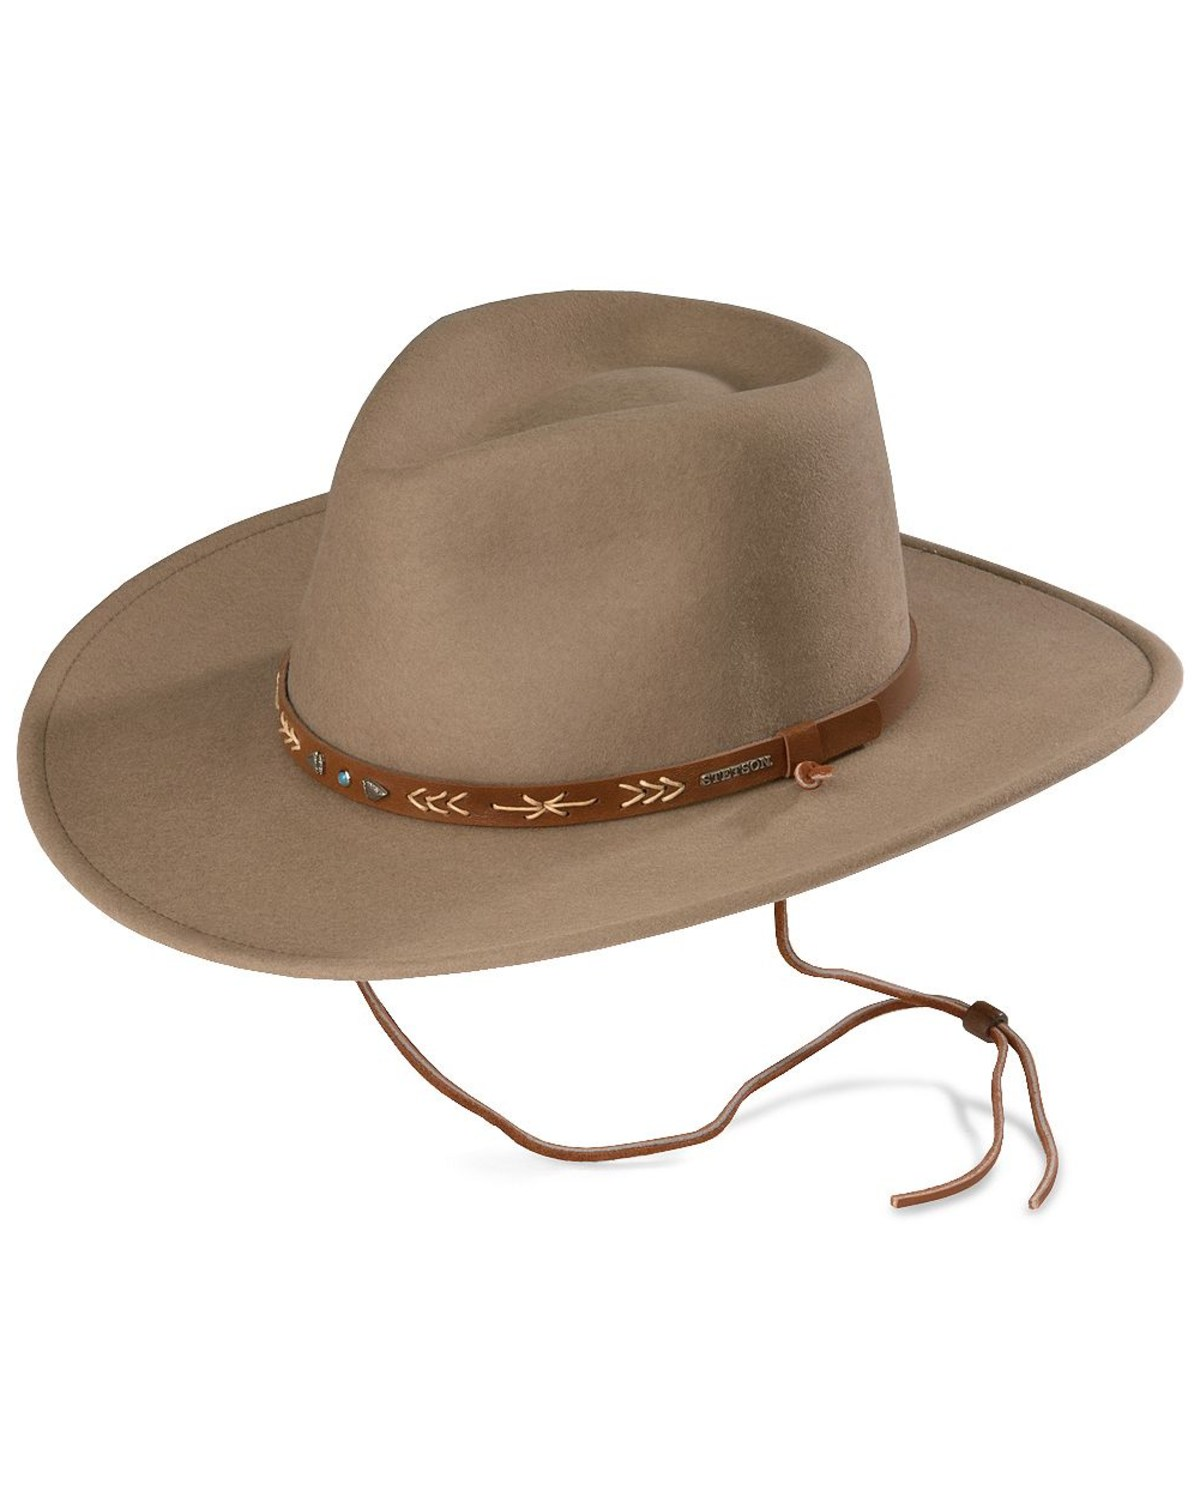 Stetson Santa Fe Crushable Wool Hat  1a51ca33b